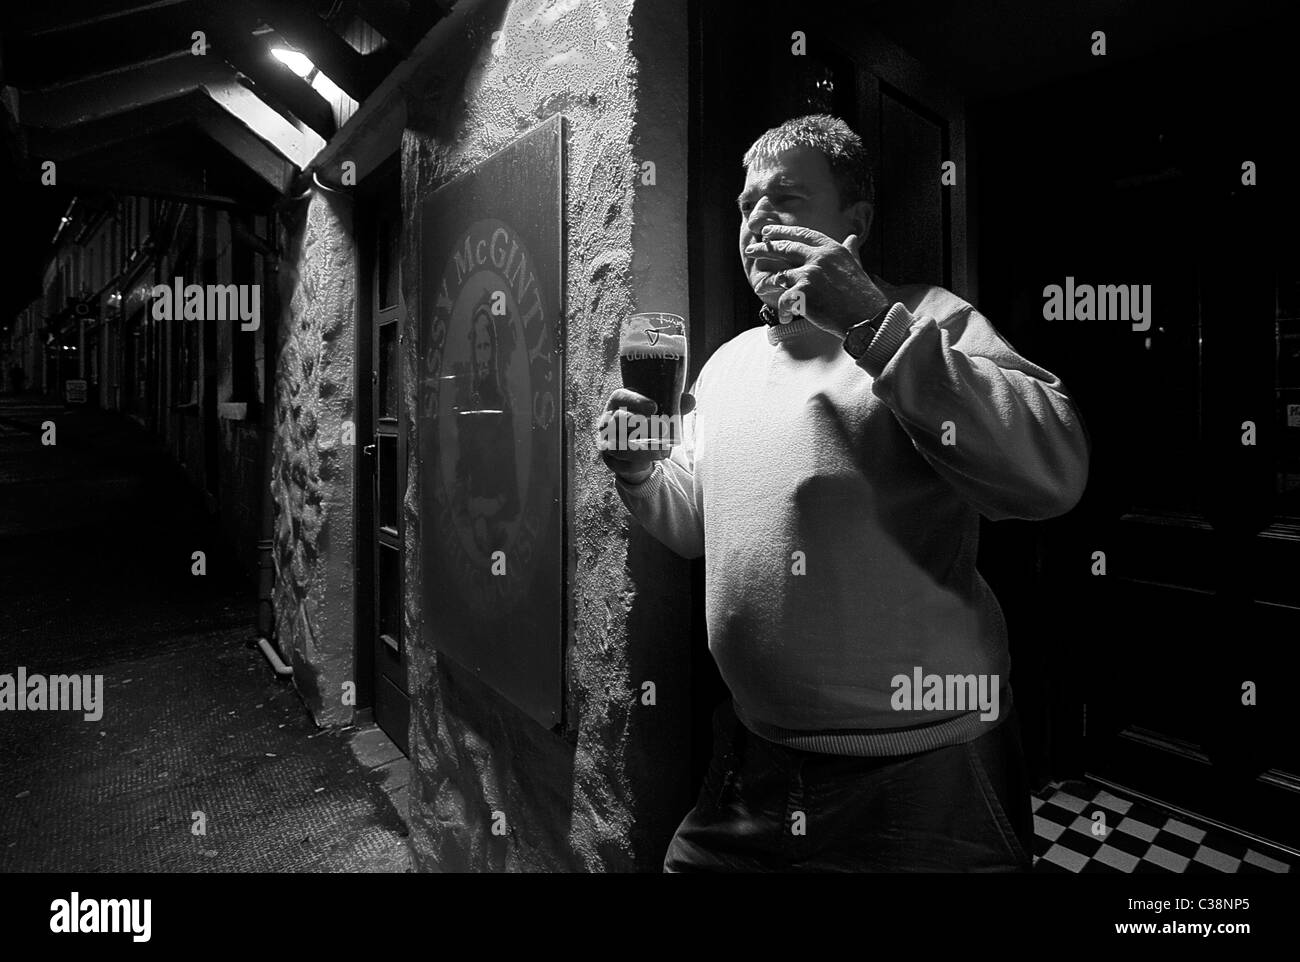 A man enjoys a pint of Guinness outside Sissy McGinty's Pub, Castlerea, County Roscommon, Ireland. - Stock Image